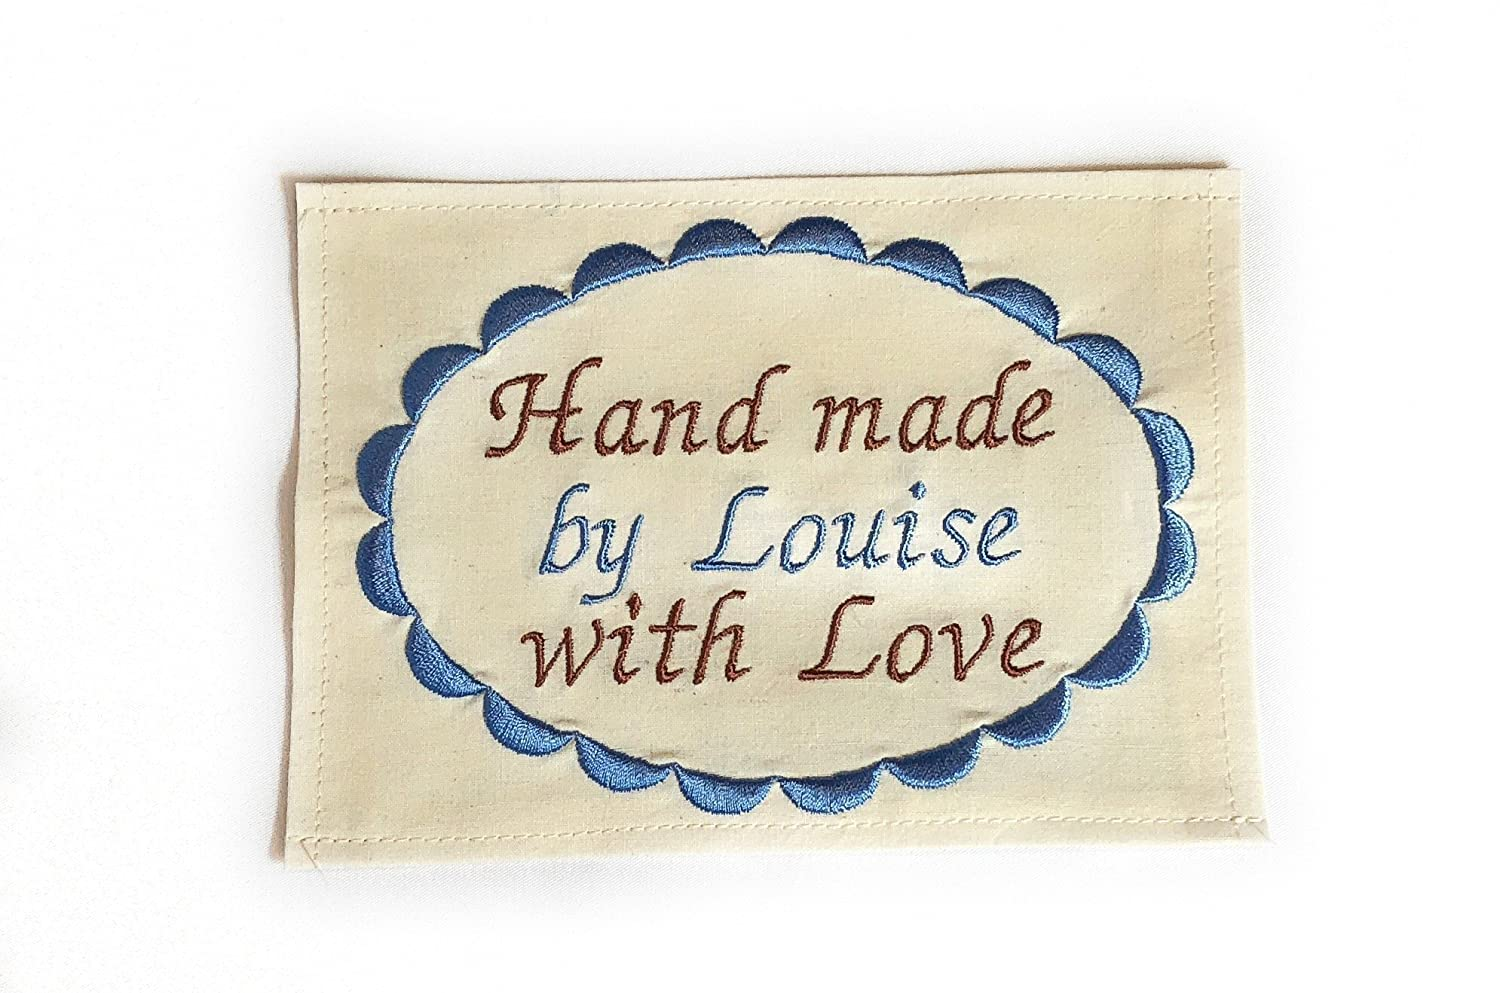 Hearts /& bells embroidered quilt label to customize with your personal message